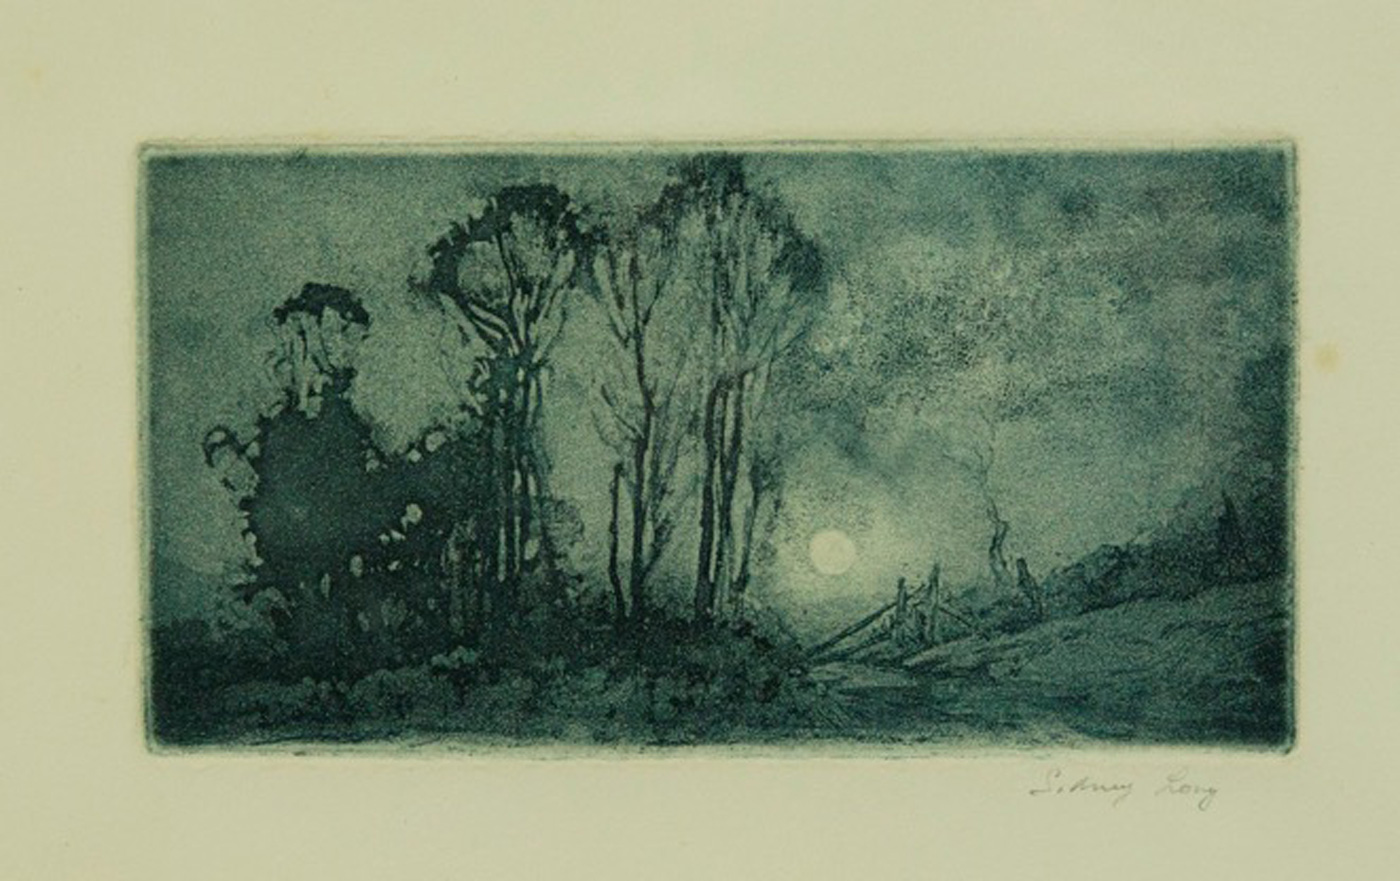 Sydney Long, Moonrise